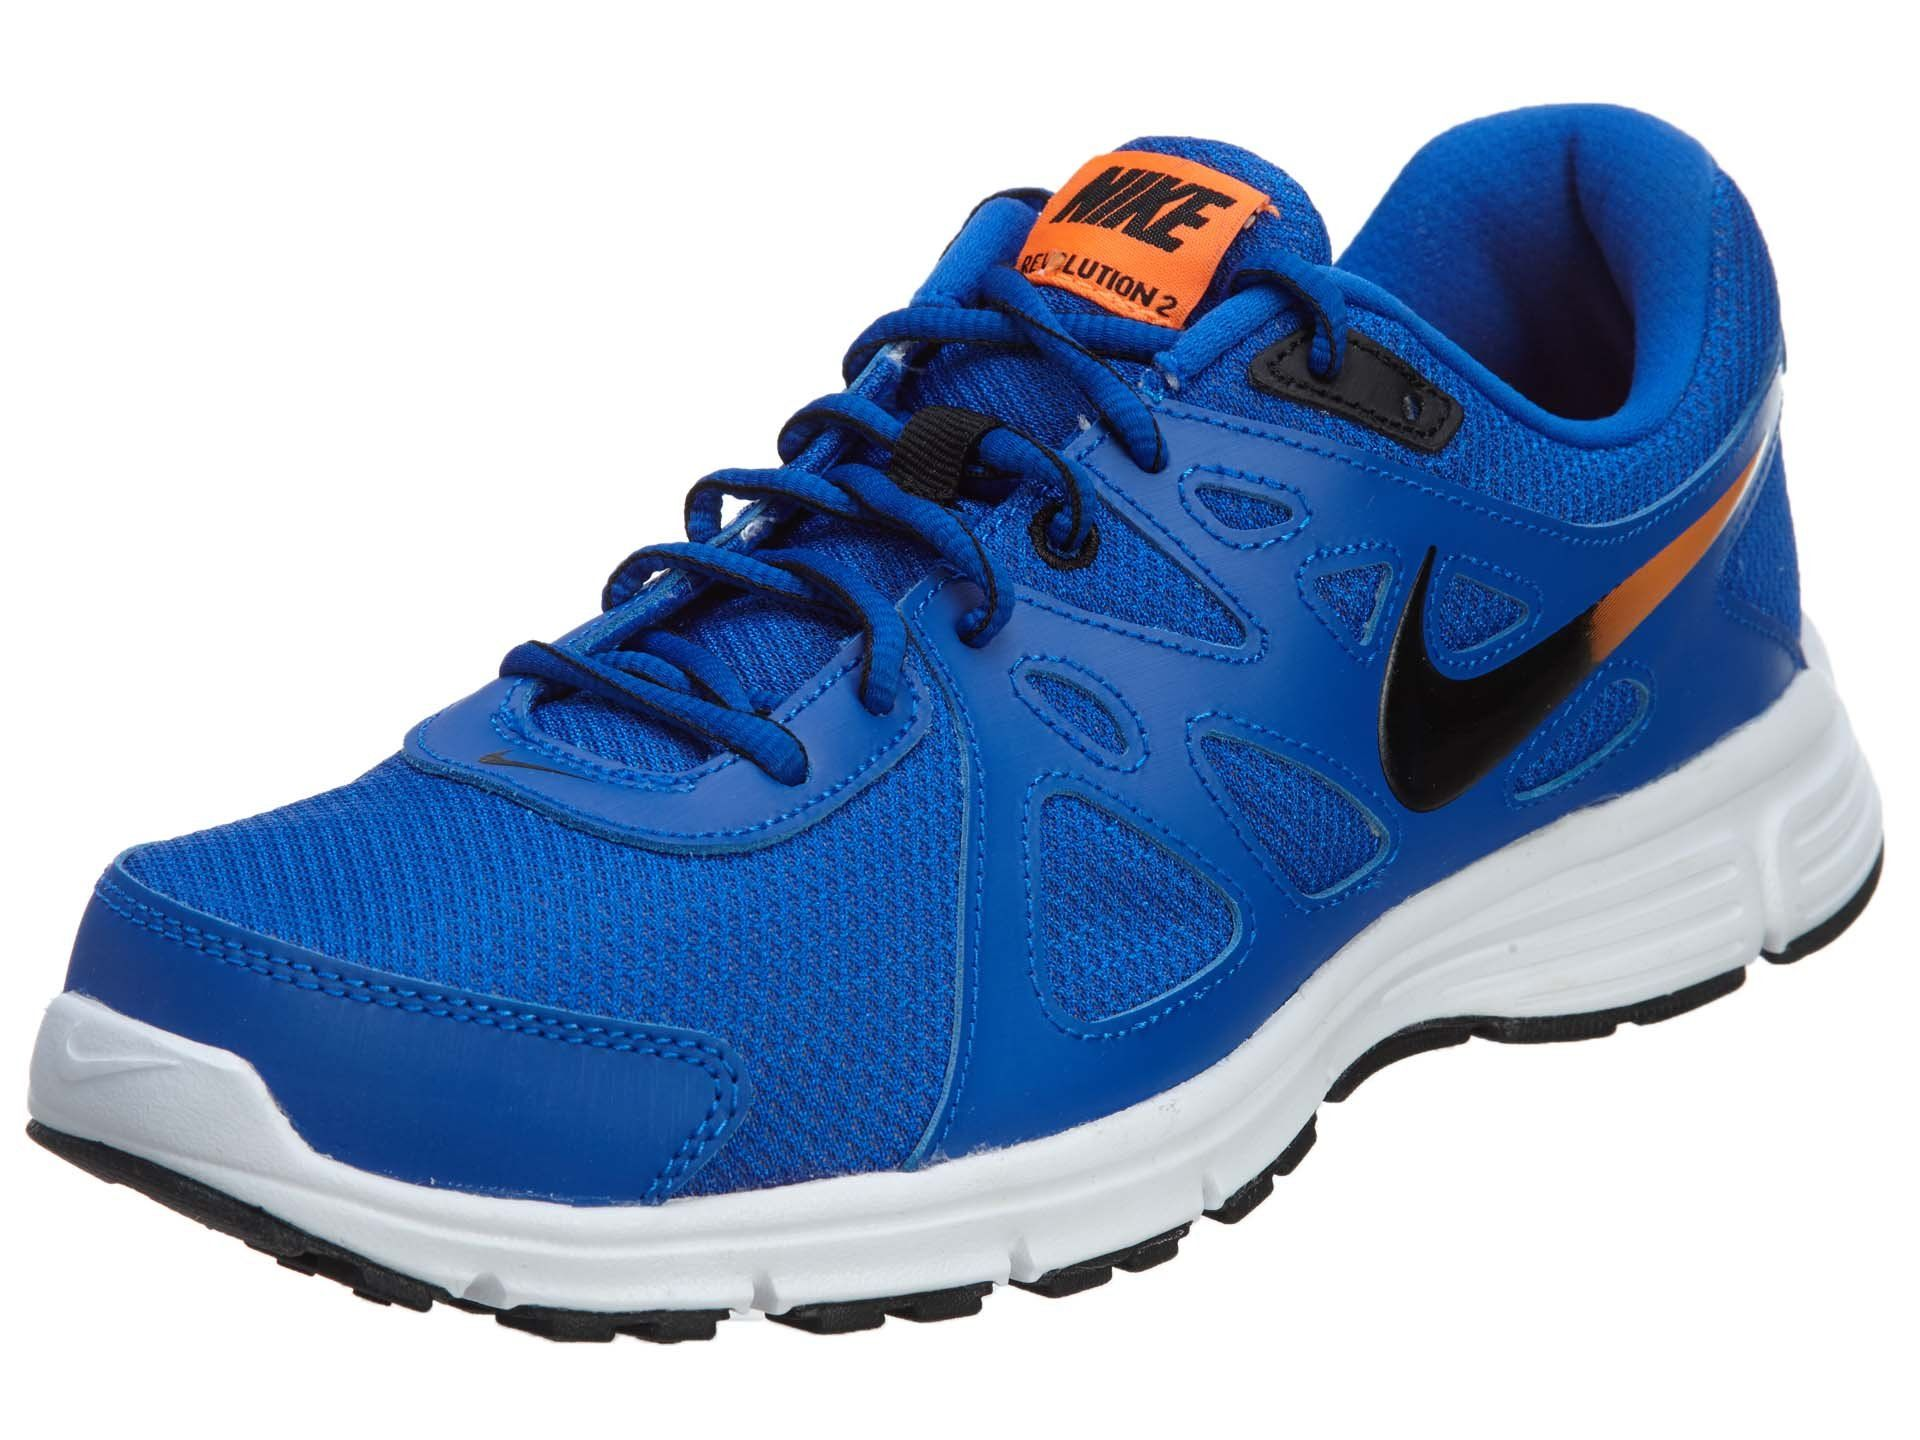 Amazon.com: Nike Men\u0027s Revolution 2 Running Shoe: Shoes \u0027The links used